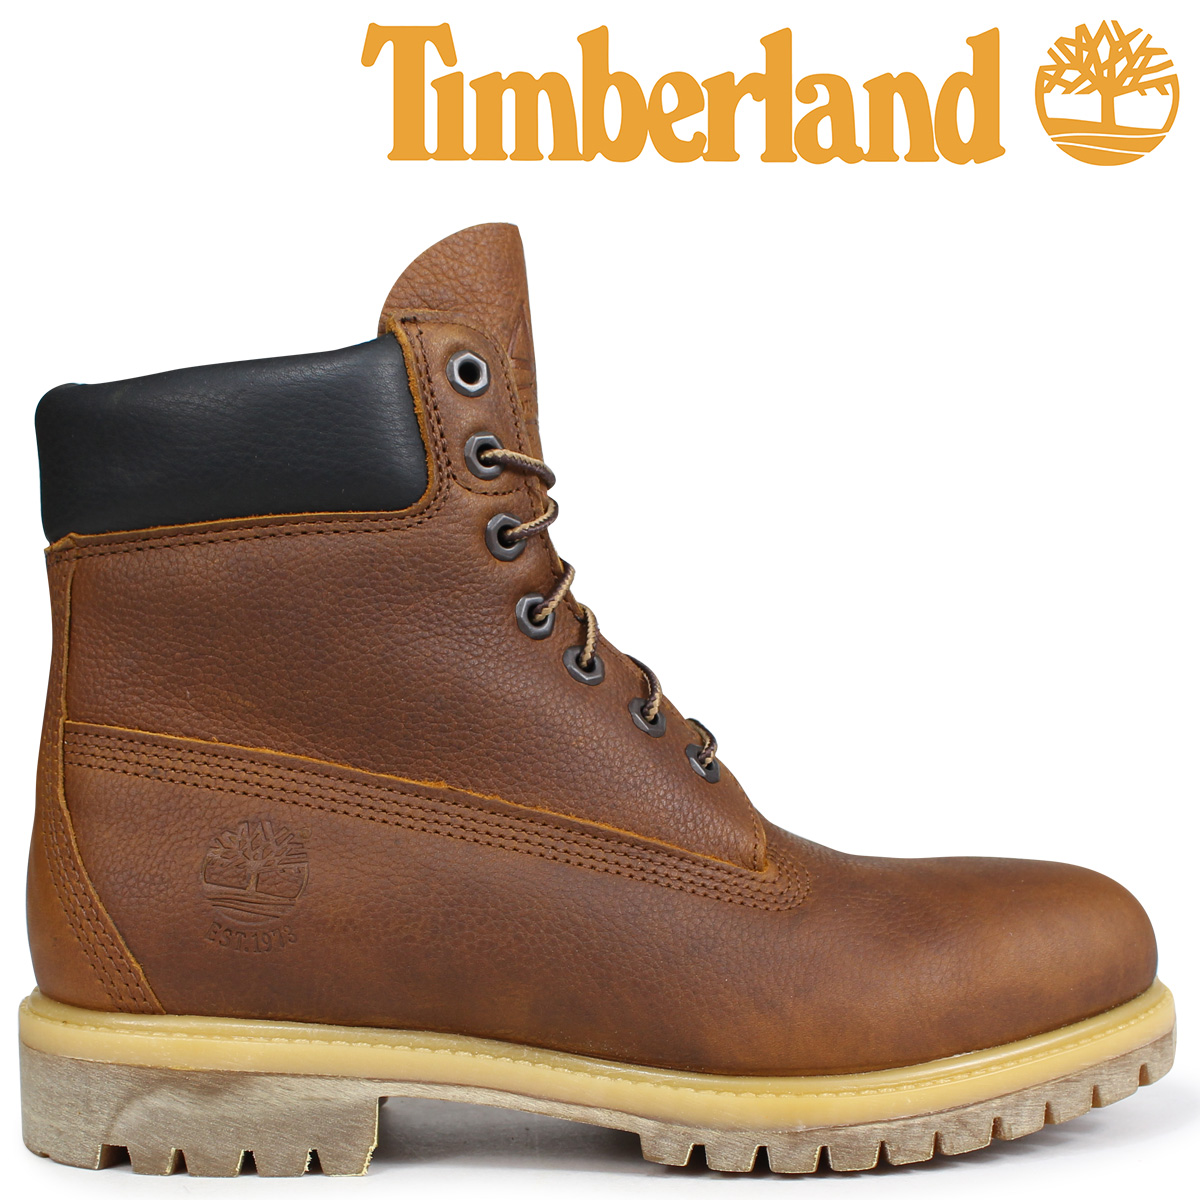 6 inches of Timberland Timberland boots men's HERITAGE 6 INCH PREMIUM BOOTS W Wise brown A1R18